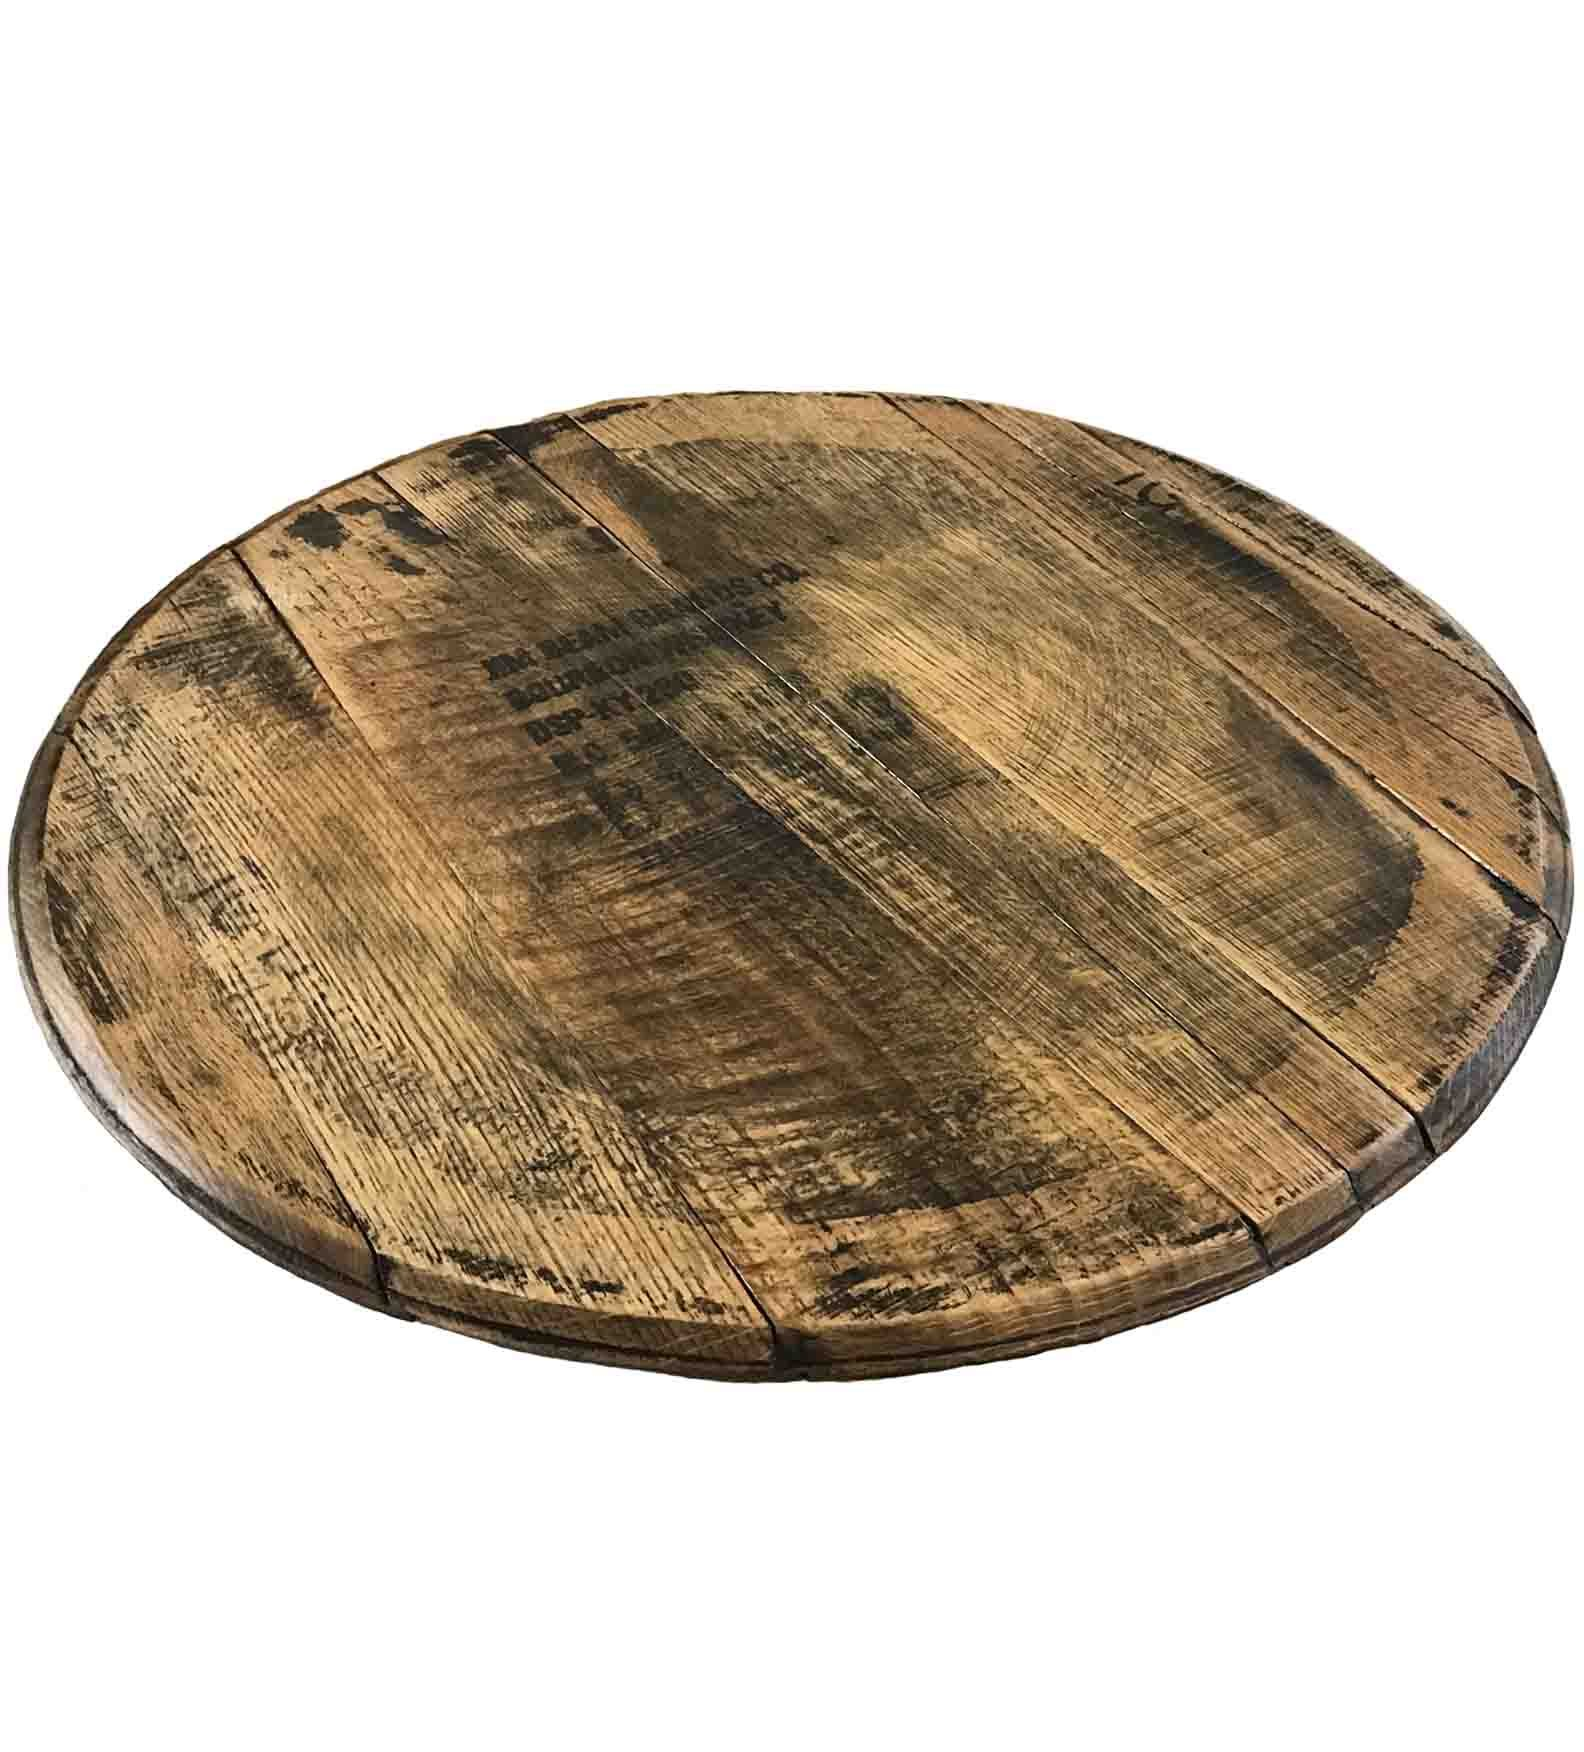 Authentic Jim Beam Whiskey Bourbon Barrel Lazy Susan, 21-Inches by Rustic Wall Co.